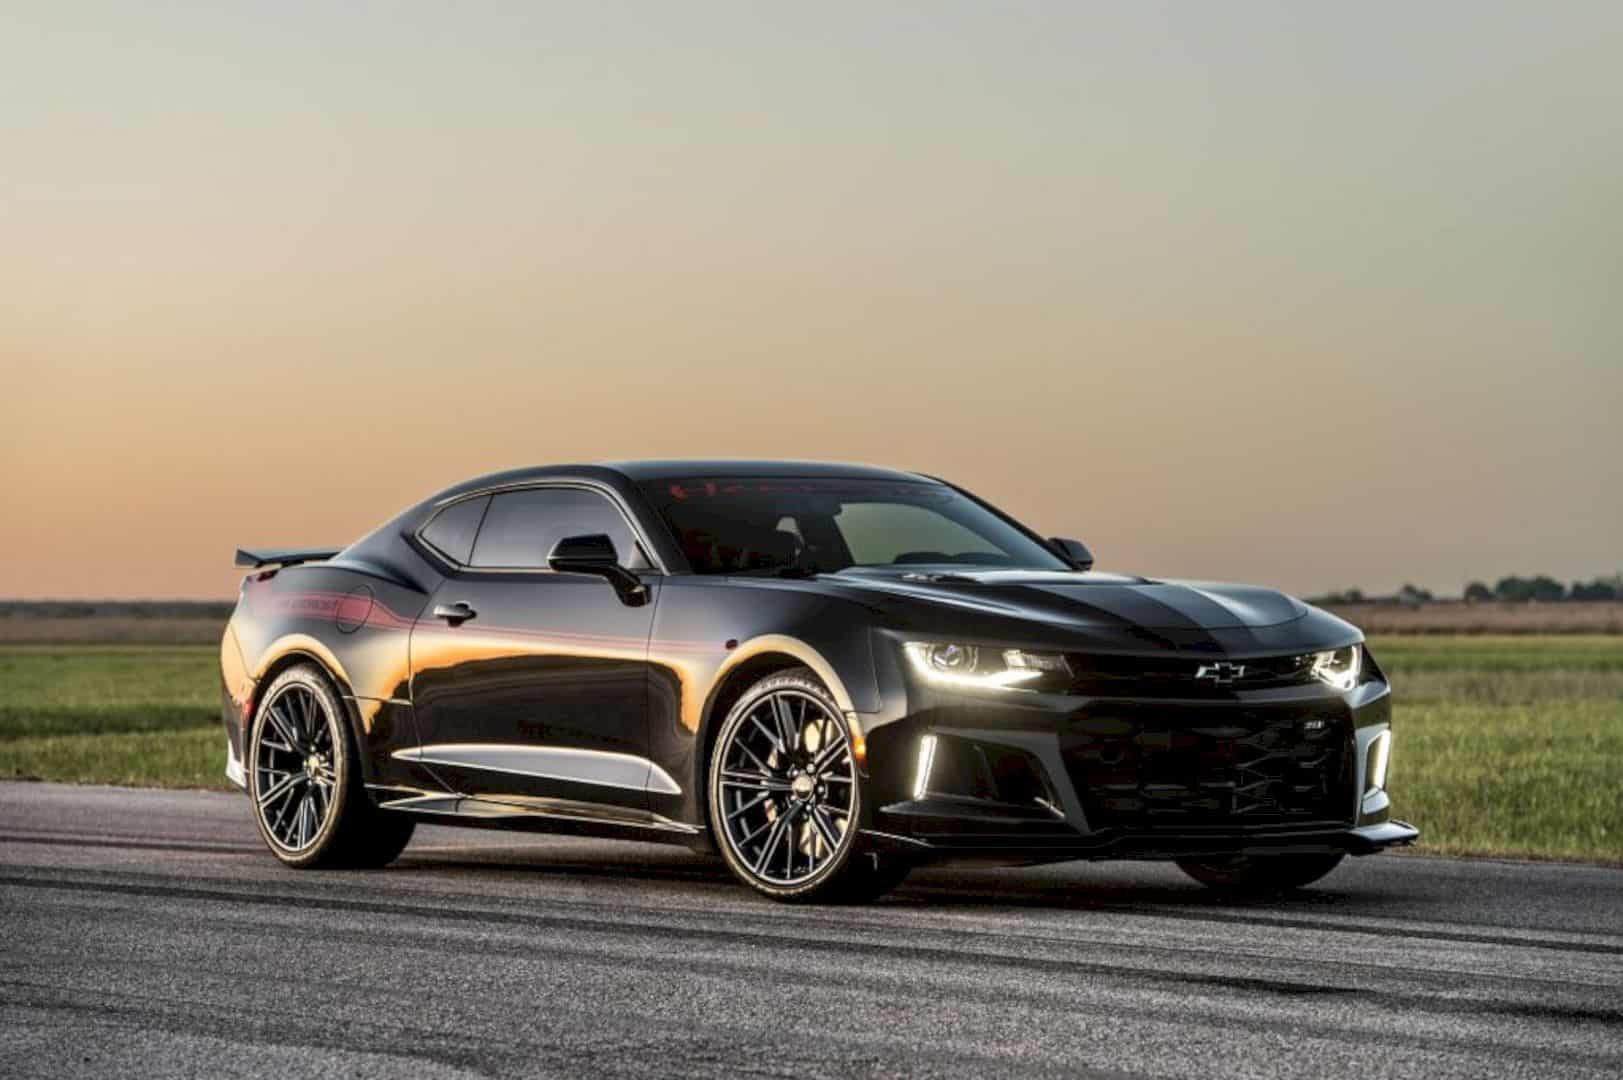 Hellcat 2018 Chevy Camaro >> THE EXORCIST By Hennessey Performance: Camaro Built That is Very Rare and Exclusive | Design ...